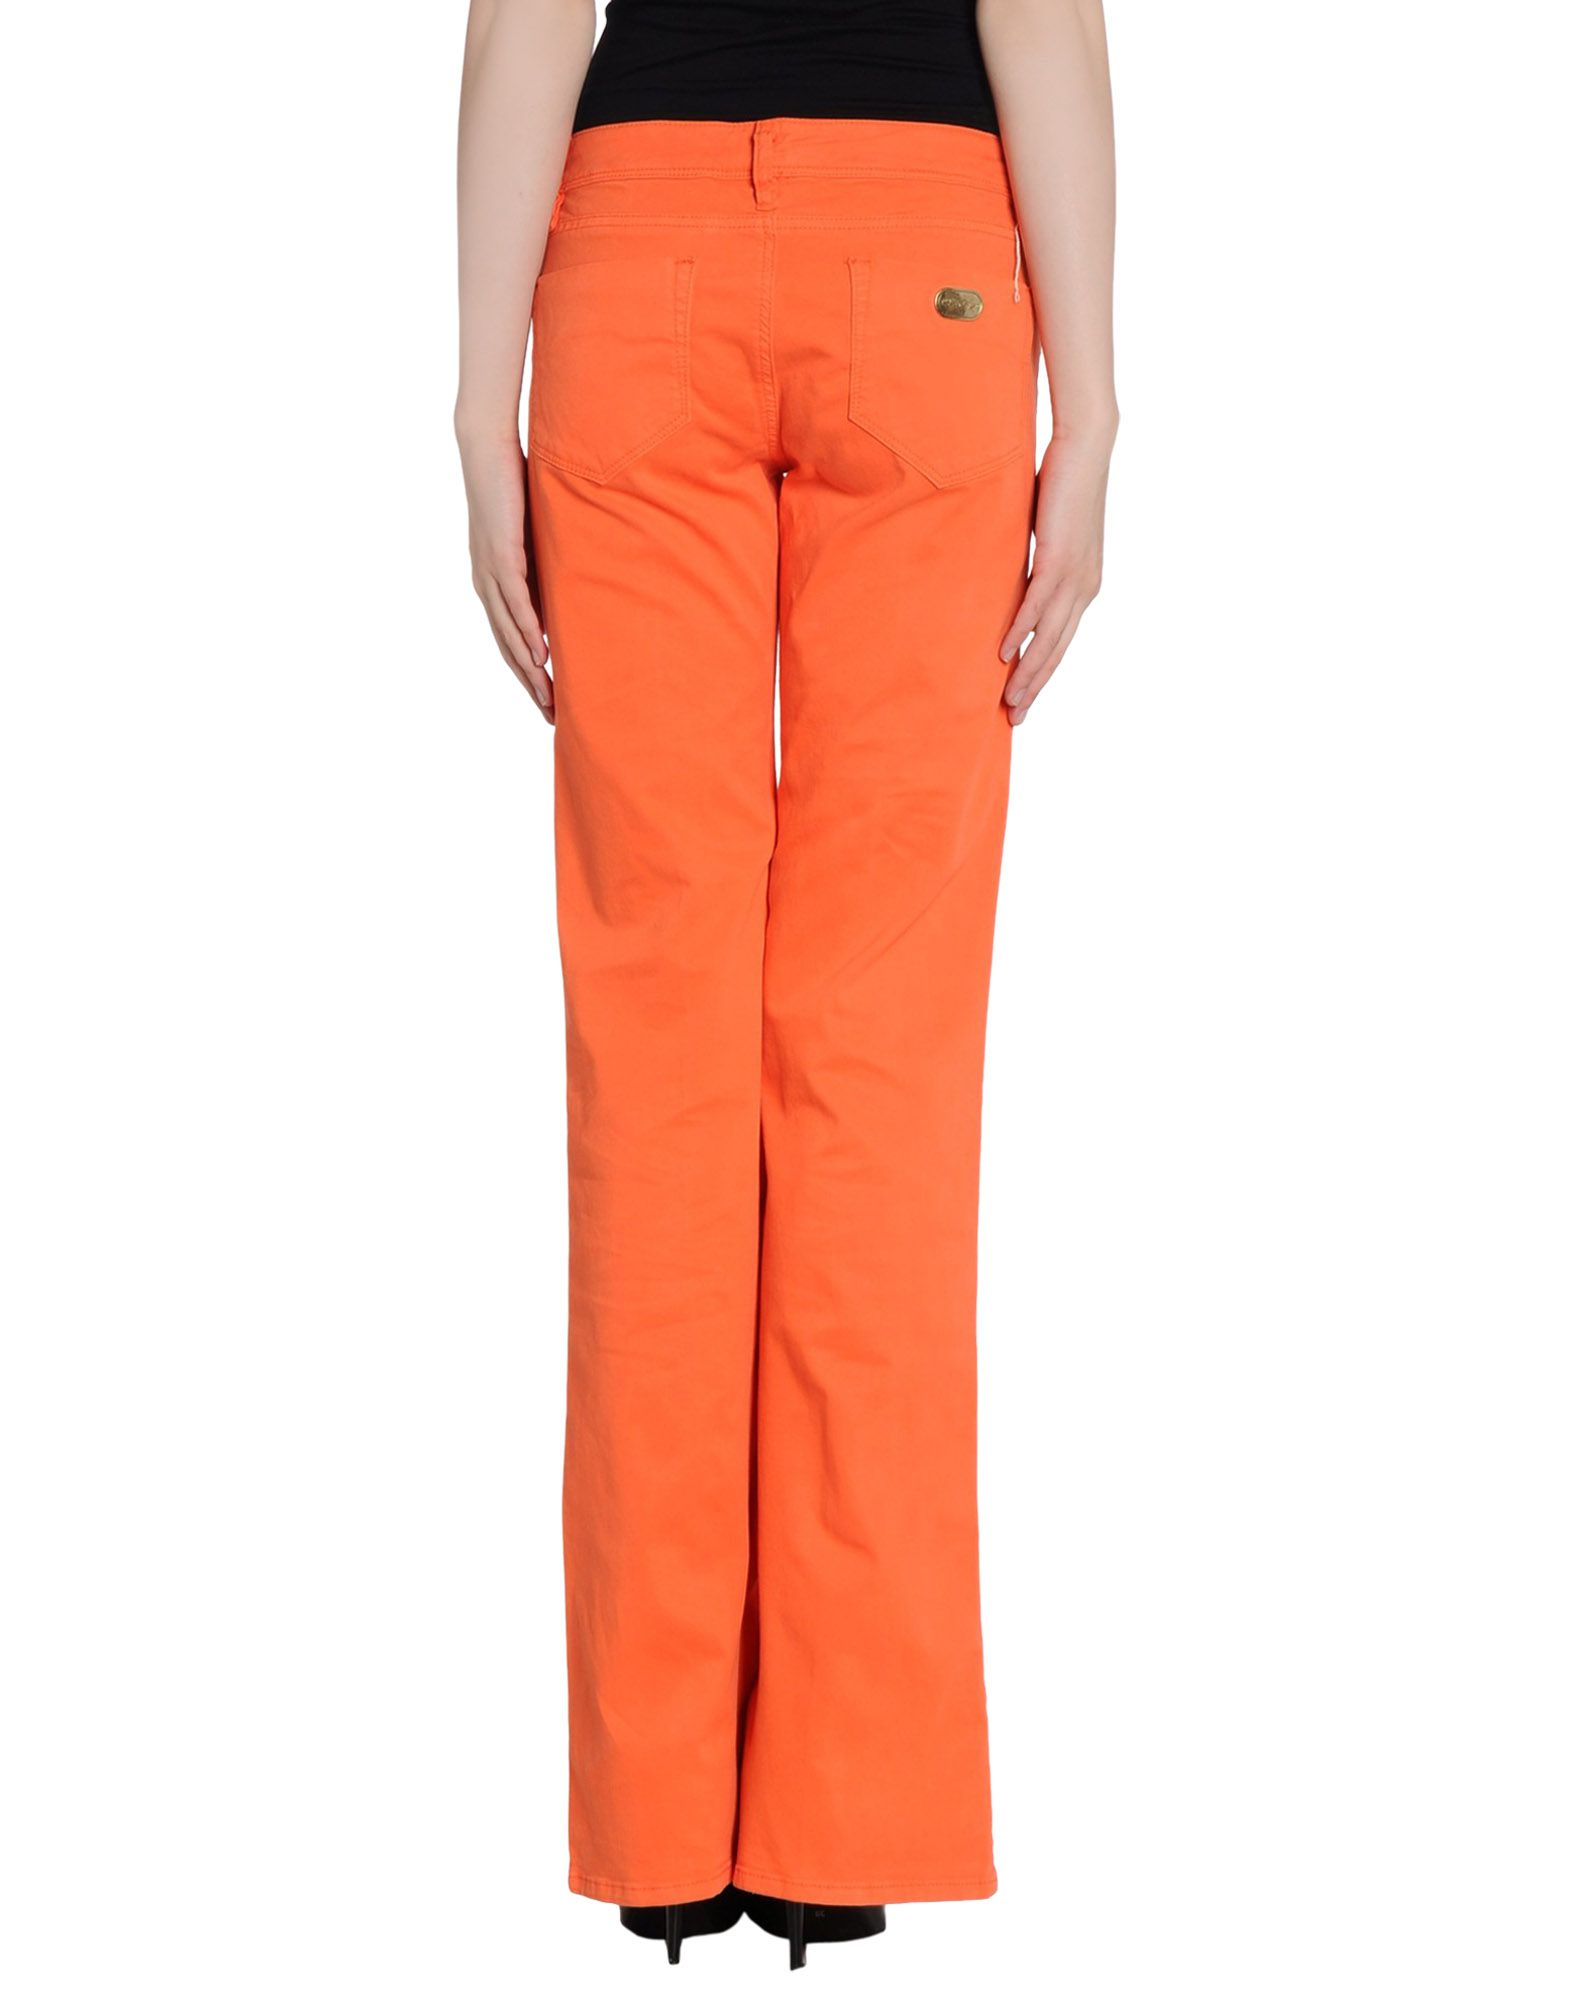 Excellent How To Wear Orange Trousers Amp Pants For Women 5